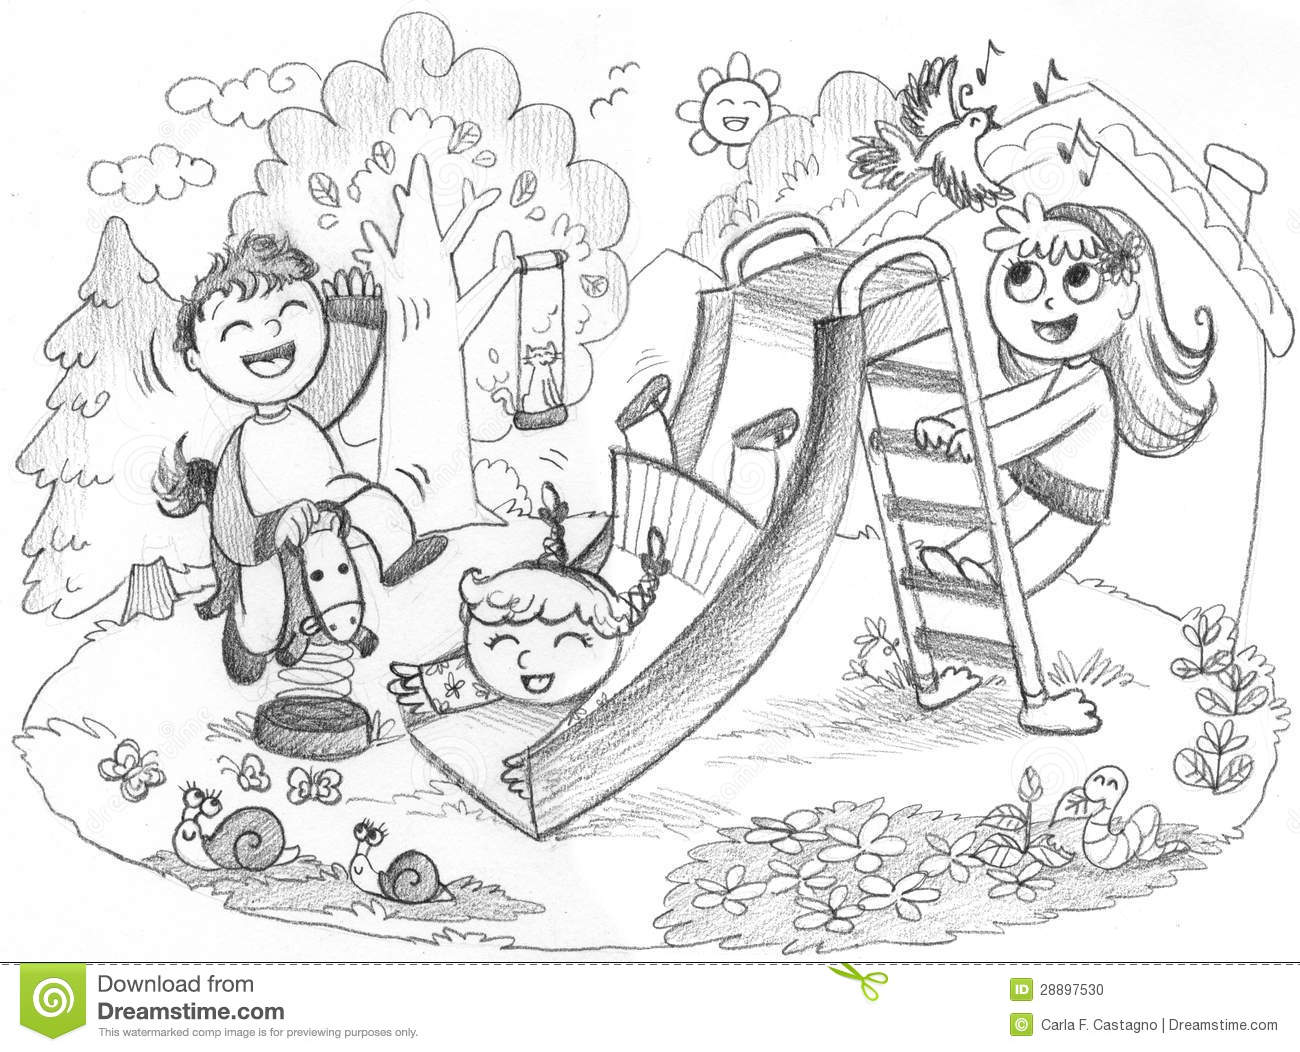 kids on playground clipart black and white » clipart station